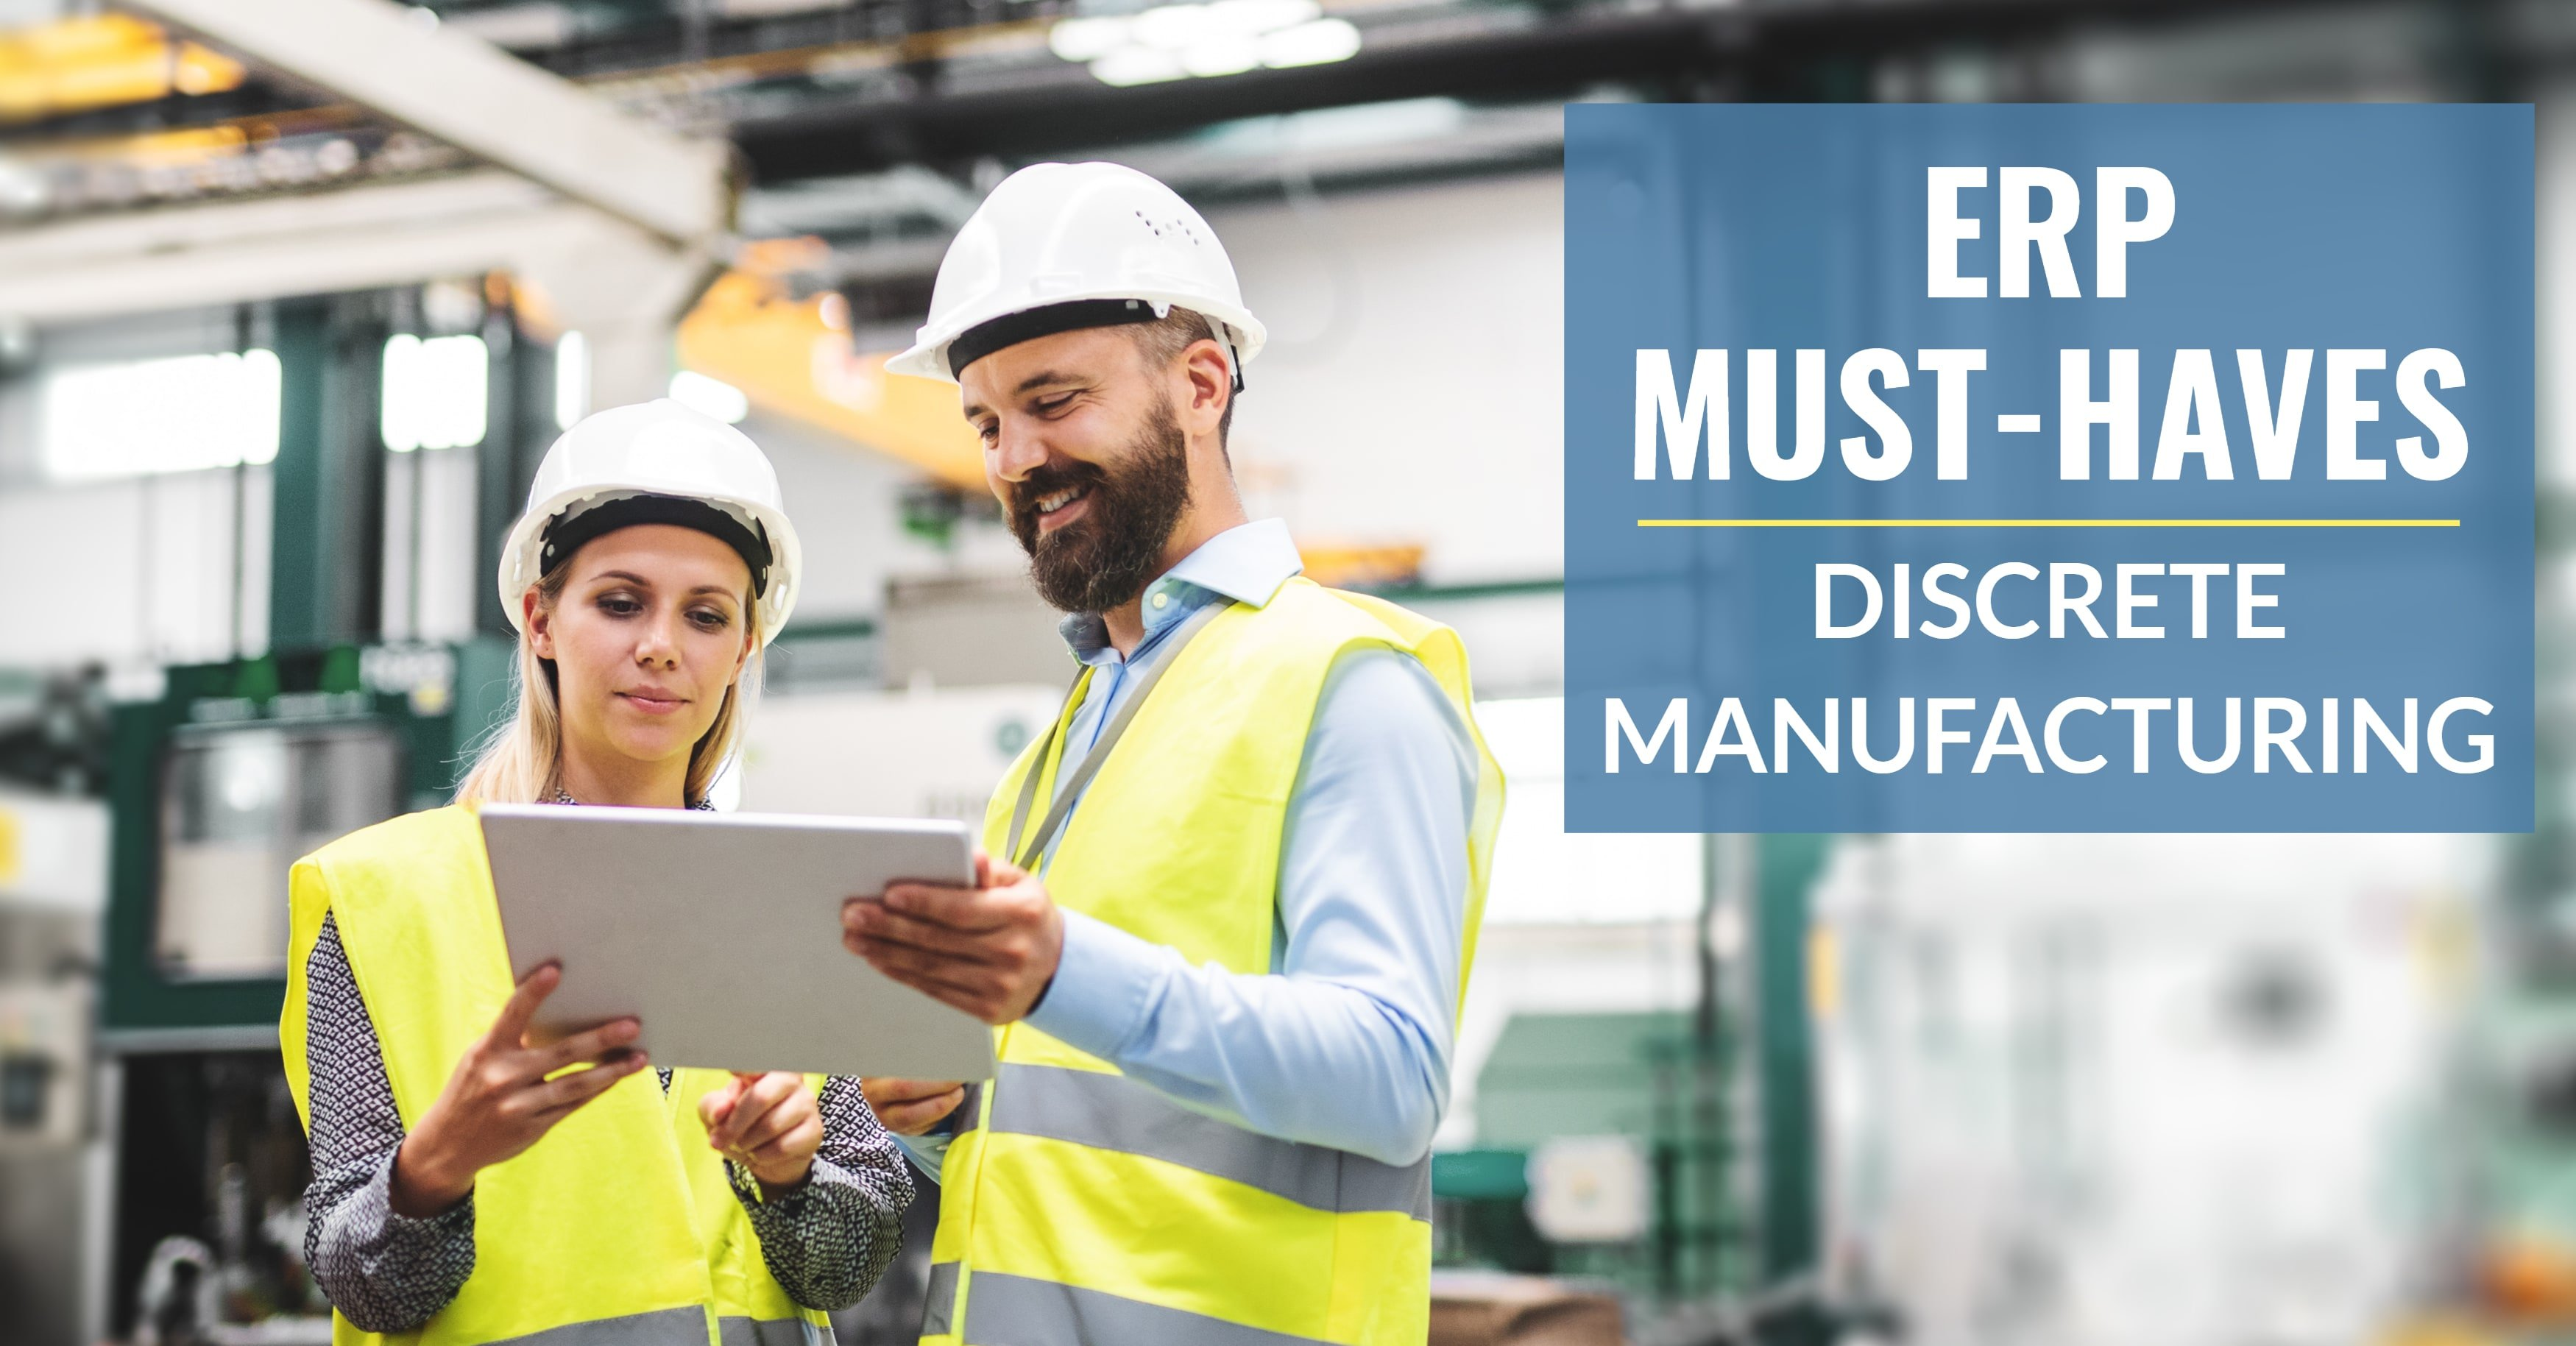 Definitive Checklist for Discrete Manufacturing ERP